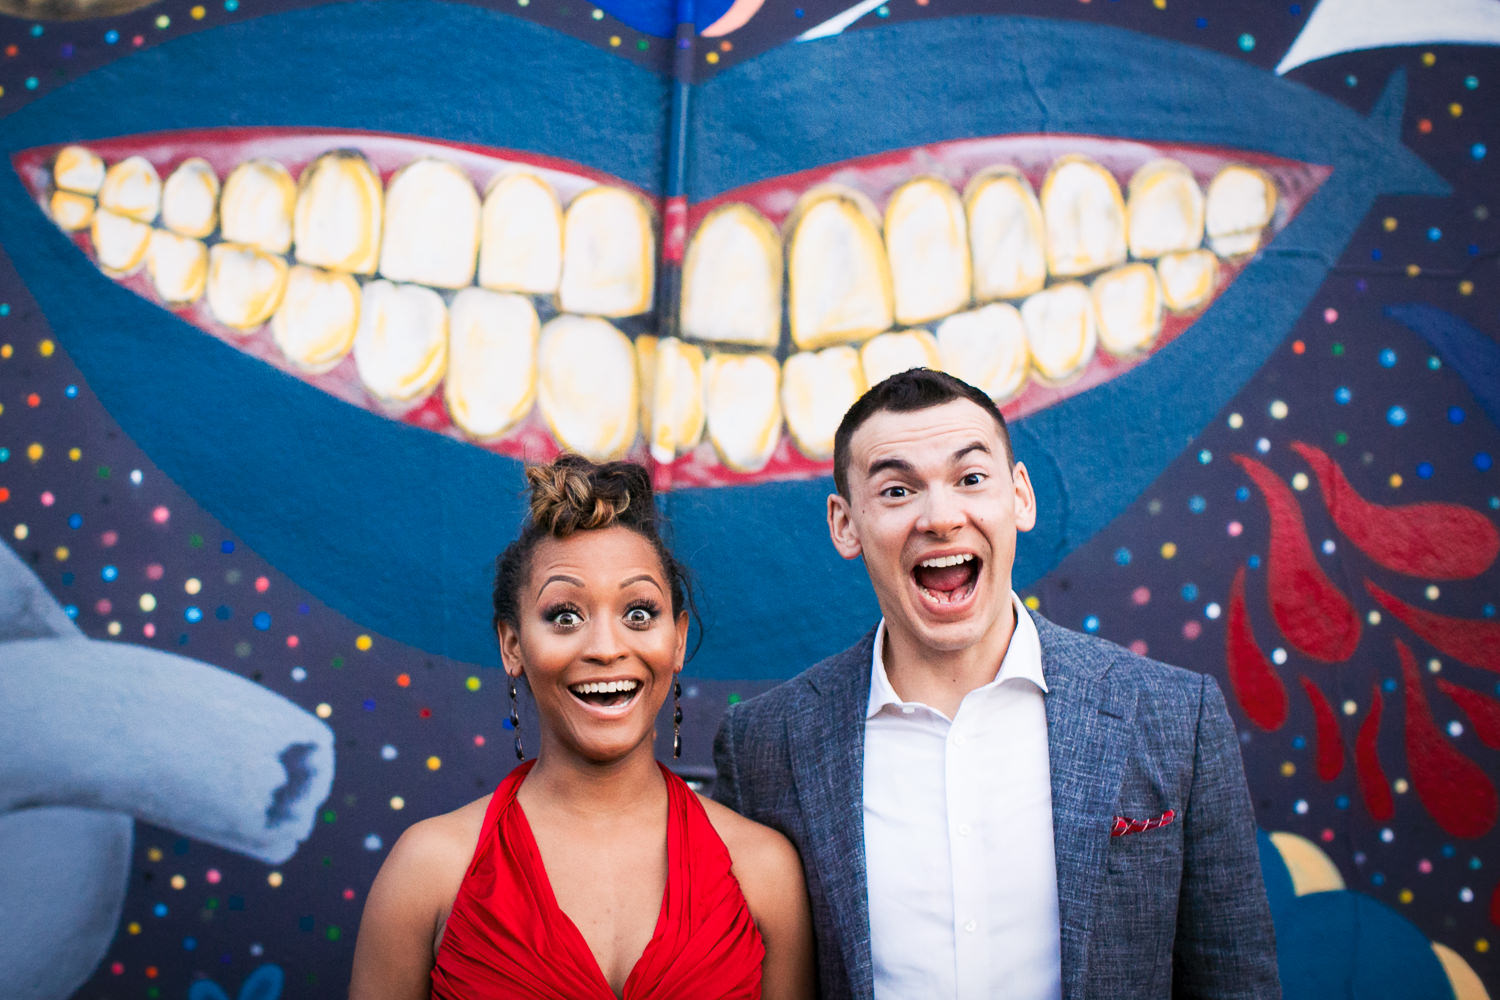 Los Angeles Engagement Photo - Couple Smiling and Laughing